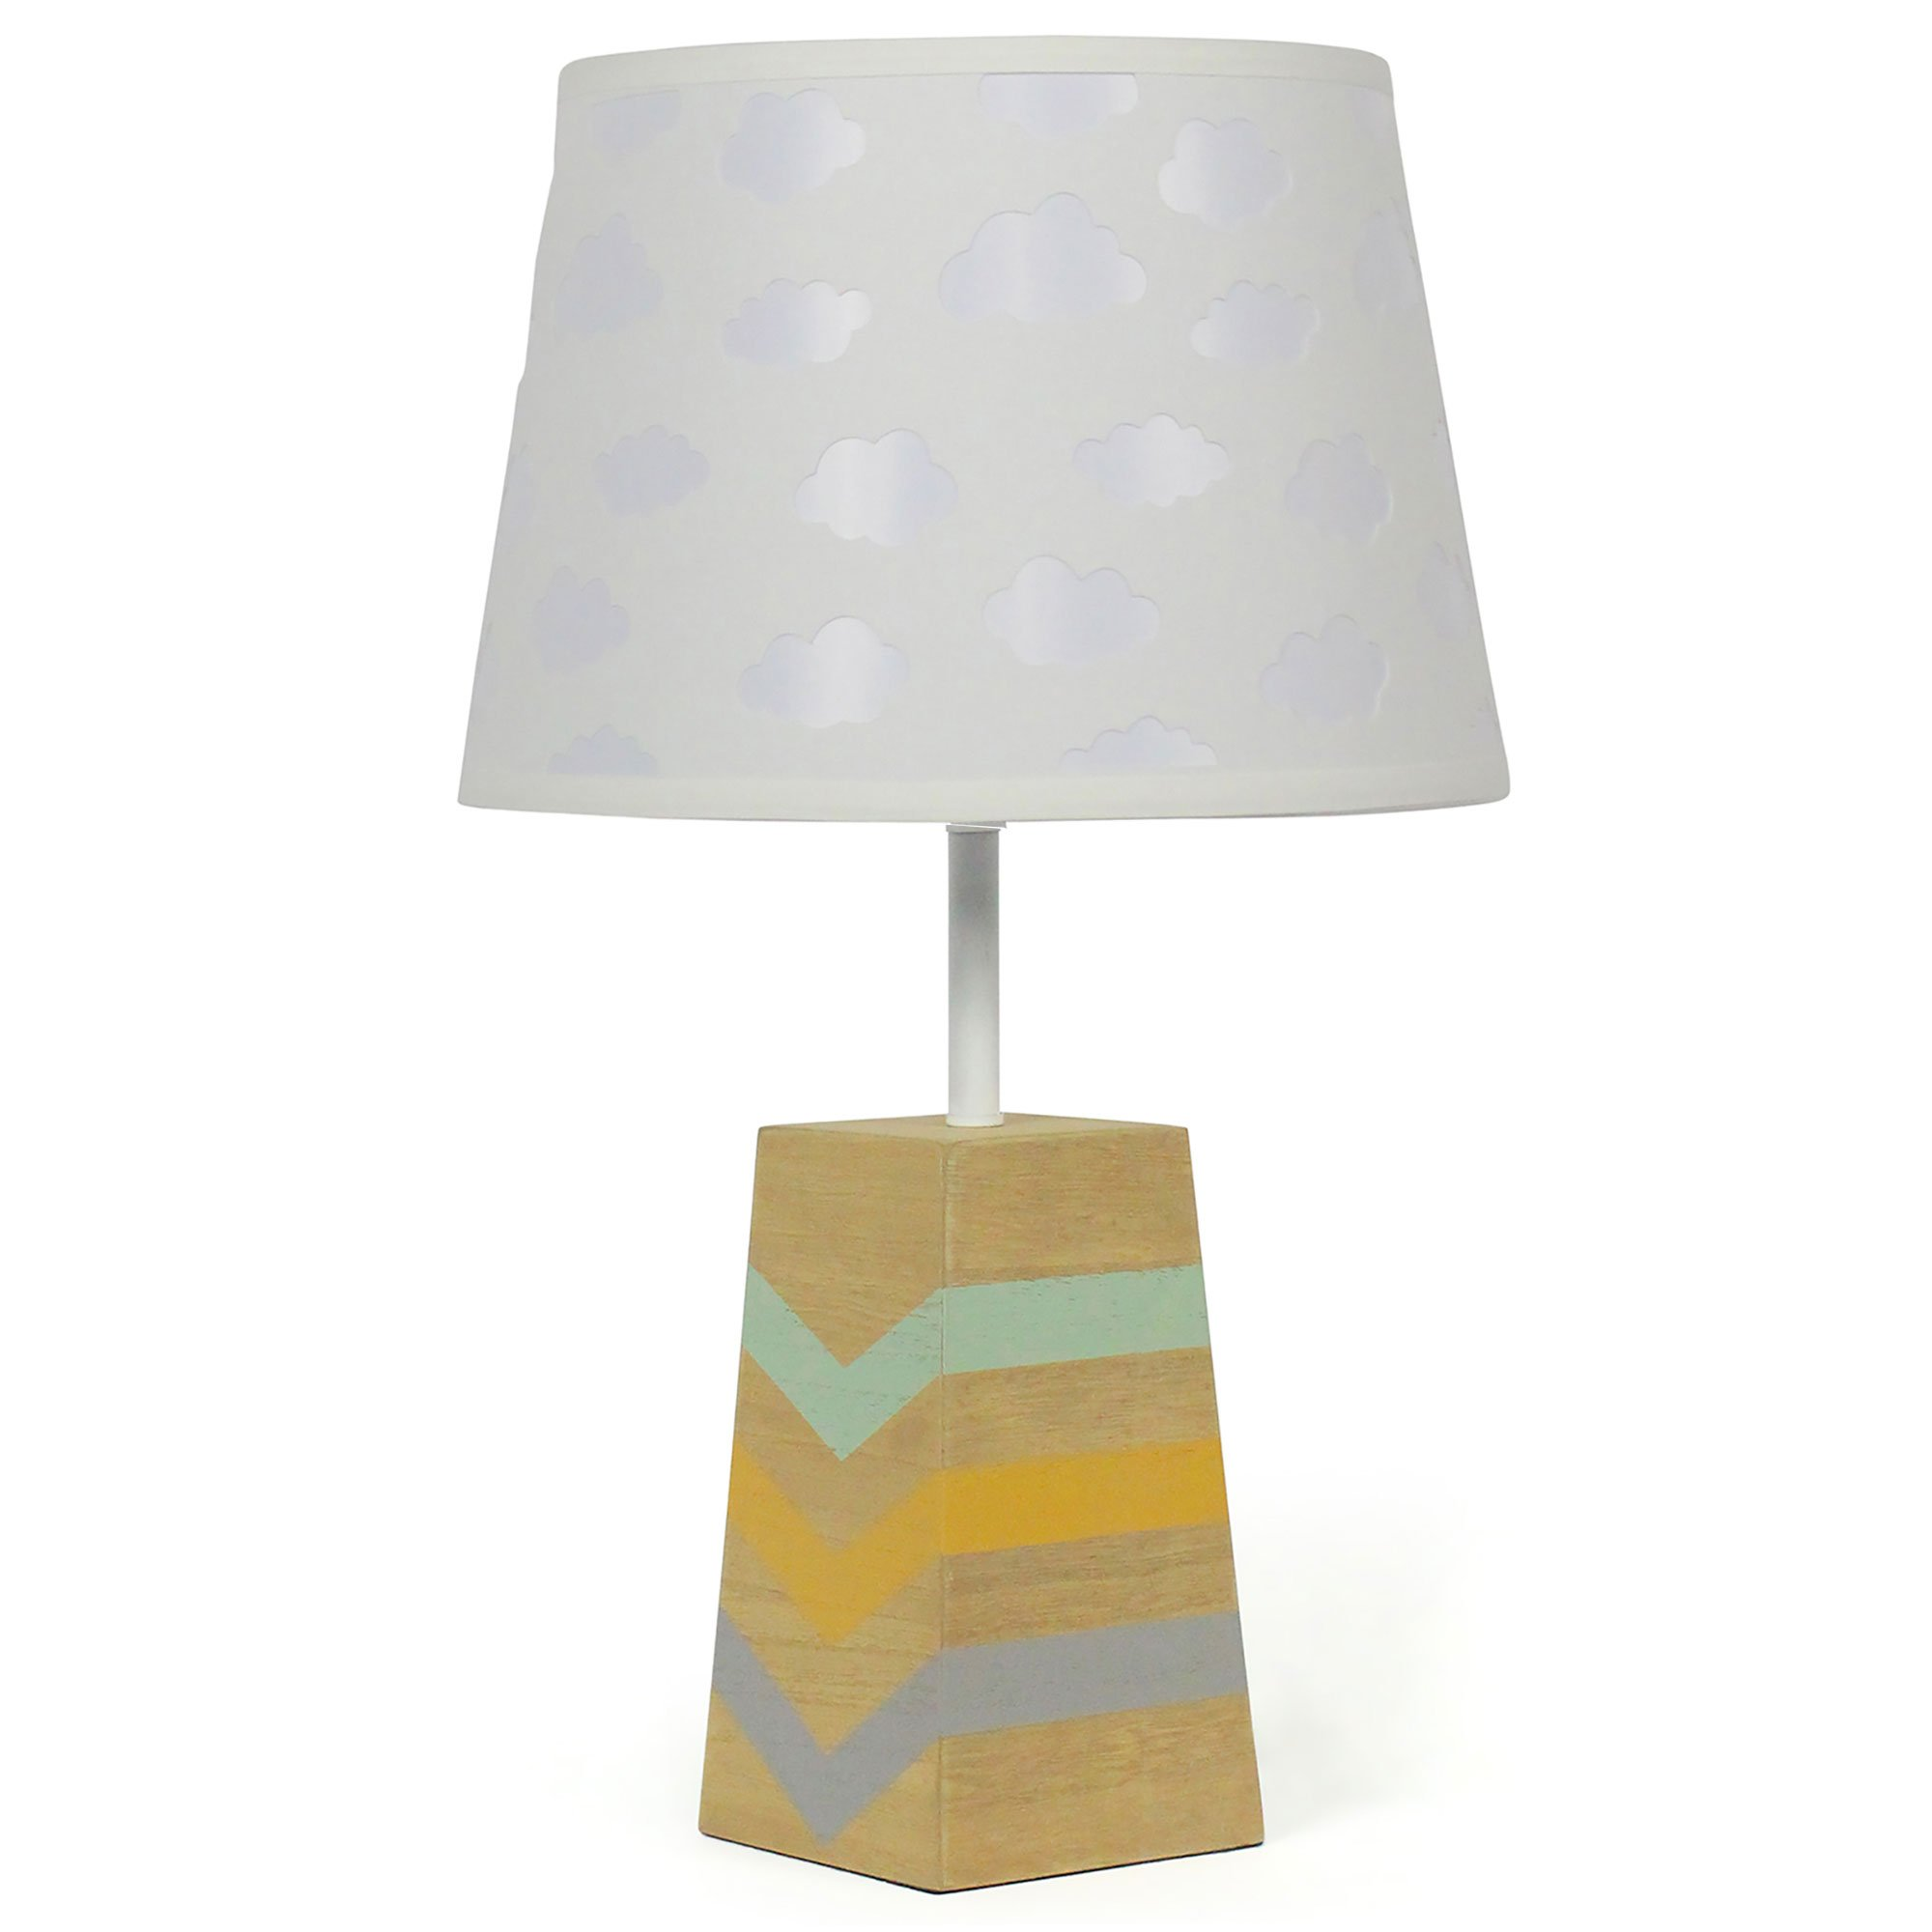 White Cloud Nursery Lamp Shade with Striped Wooden Base, CFL Bulb Included